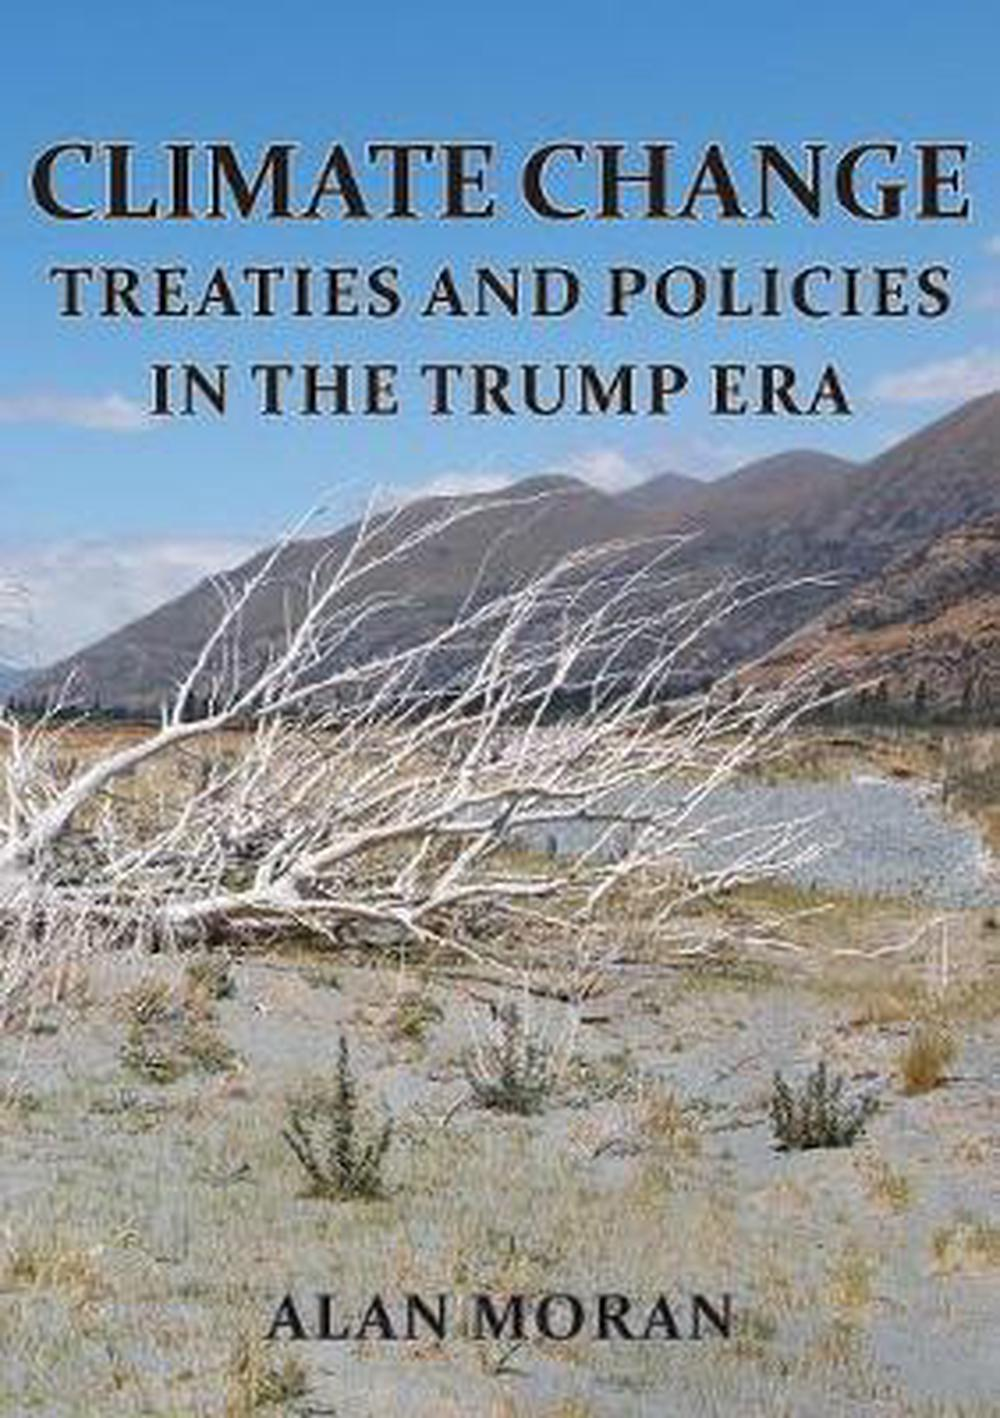 CLIMATE CHANGE: Treaties and Policies in the Trump era